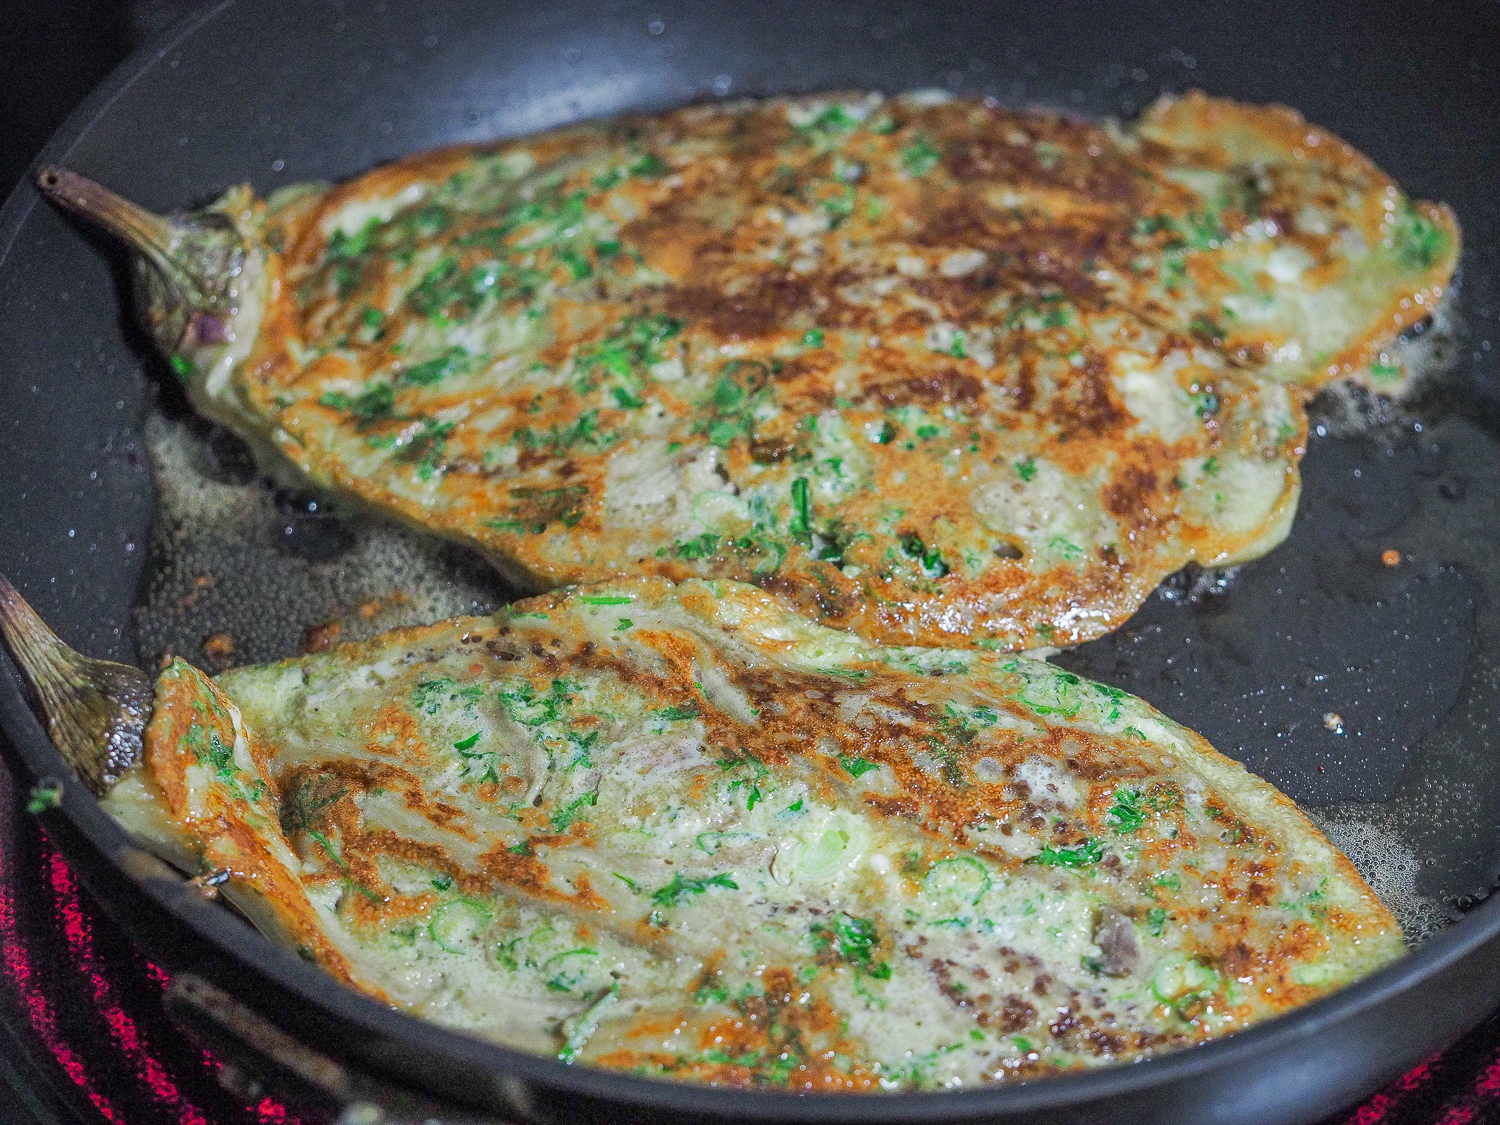 Cooked eggplant omelette in the pan